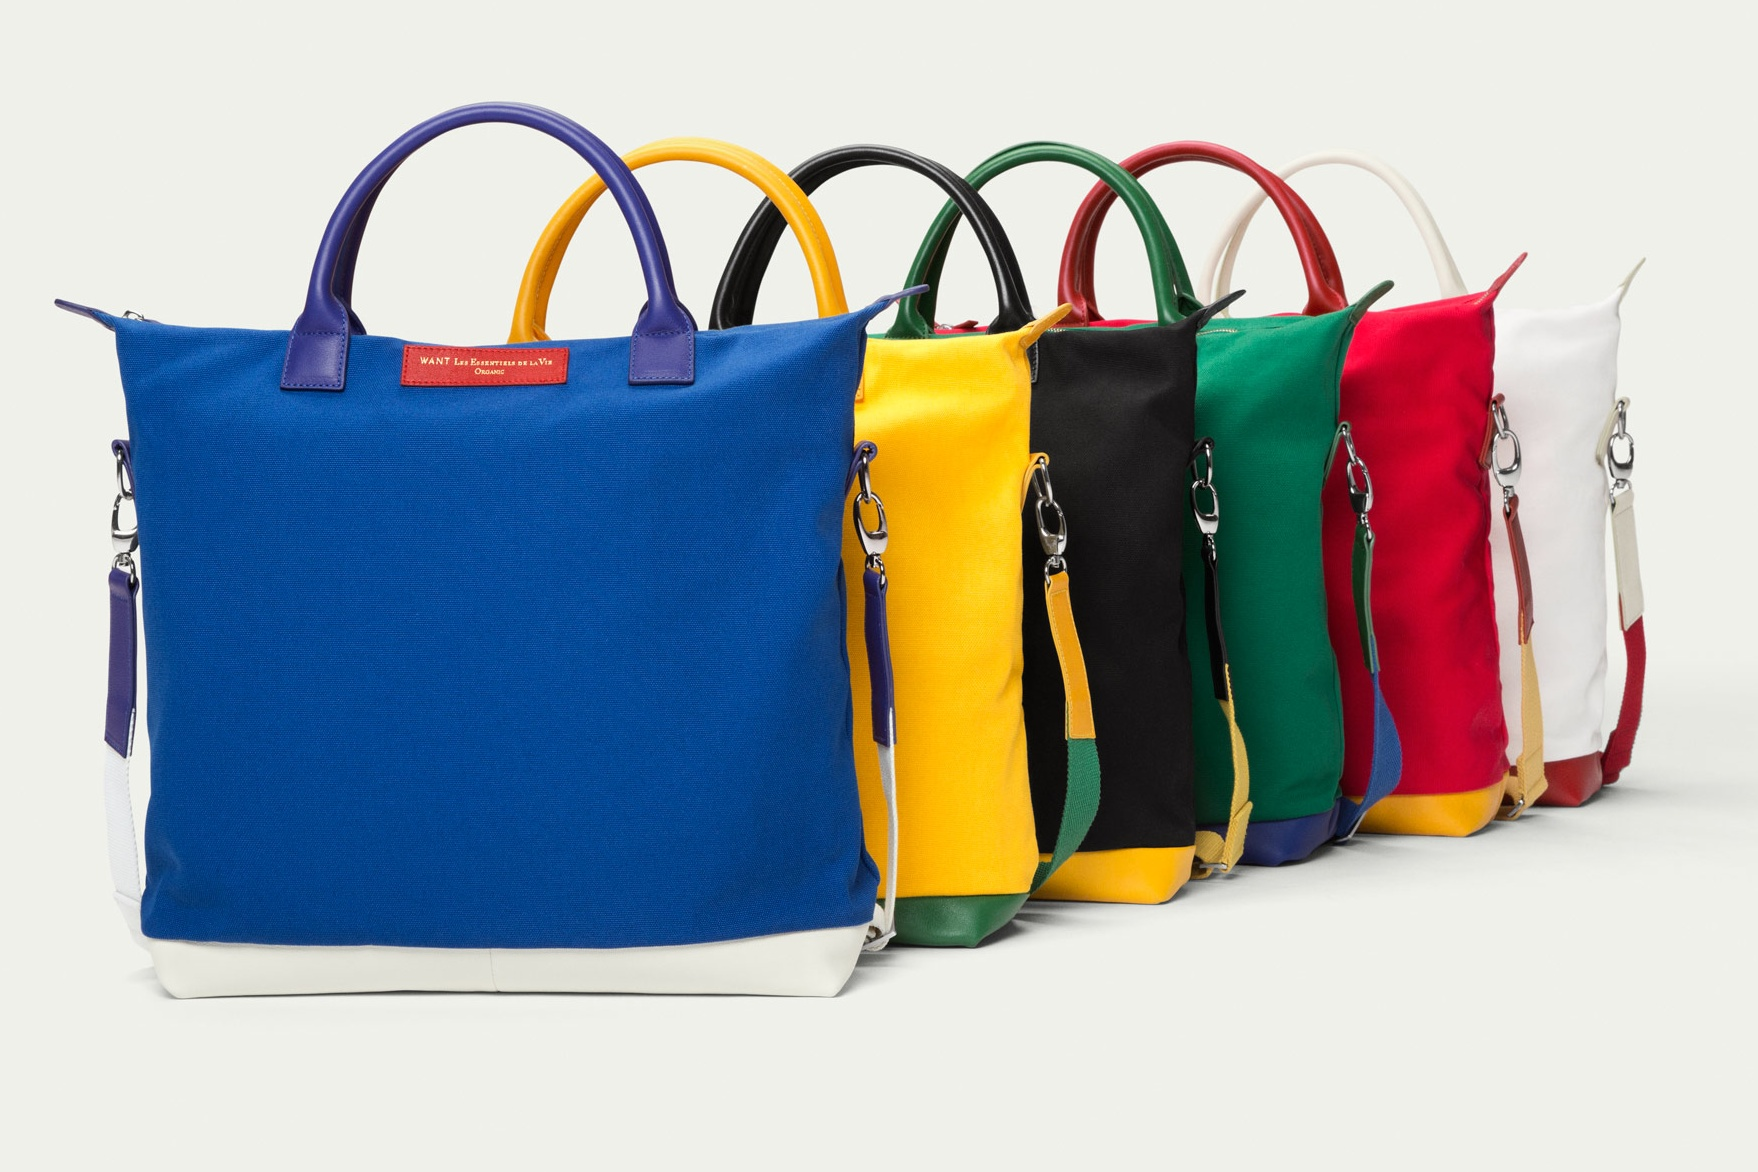 Want Les Essentiels Olympic Tote